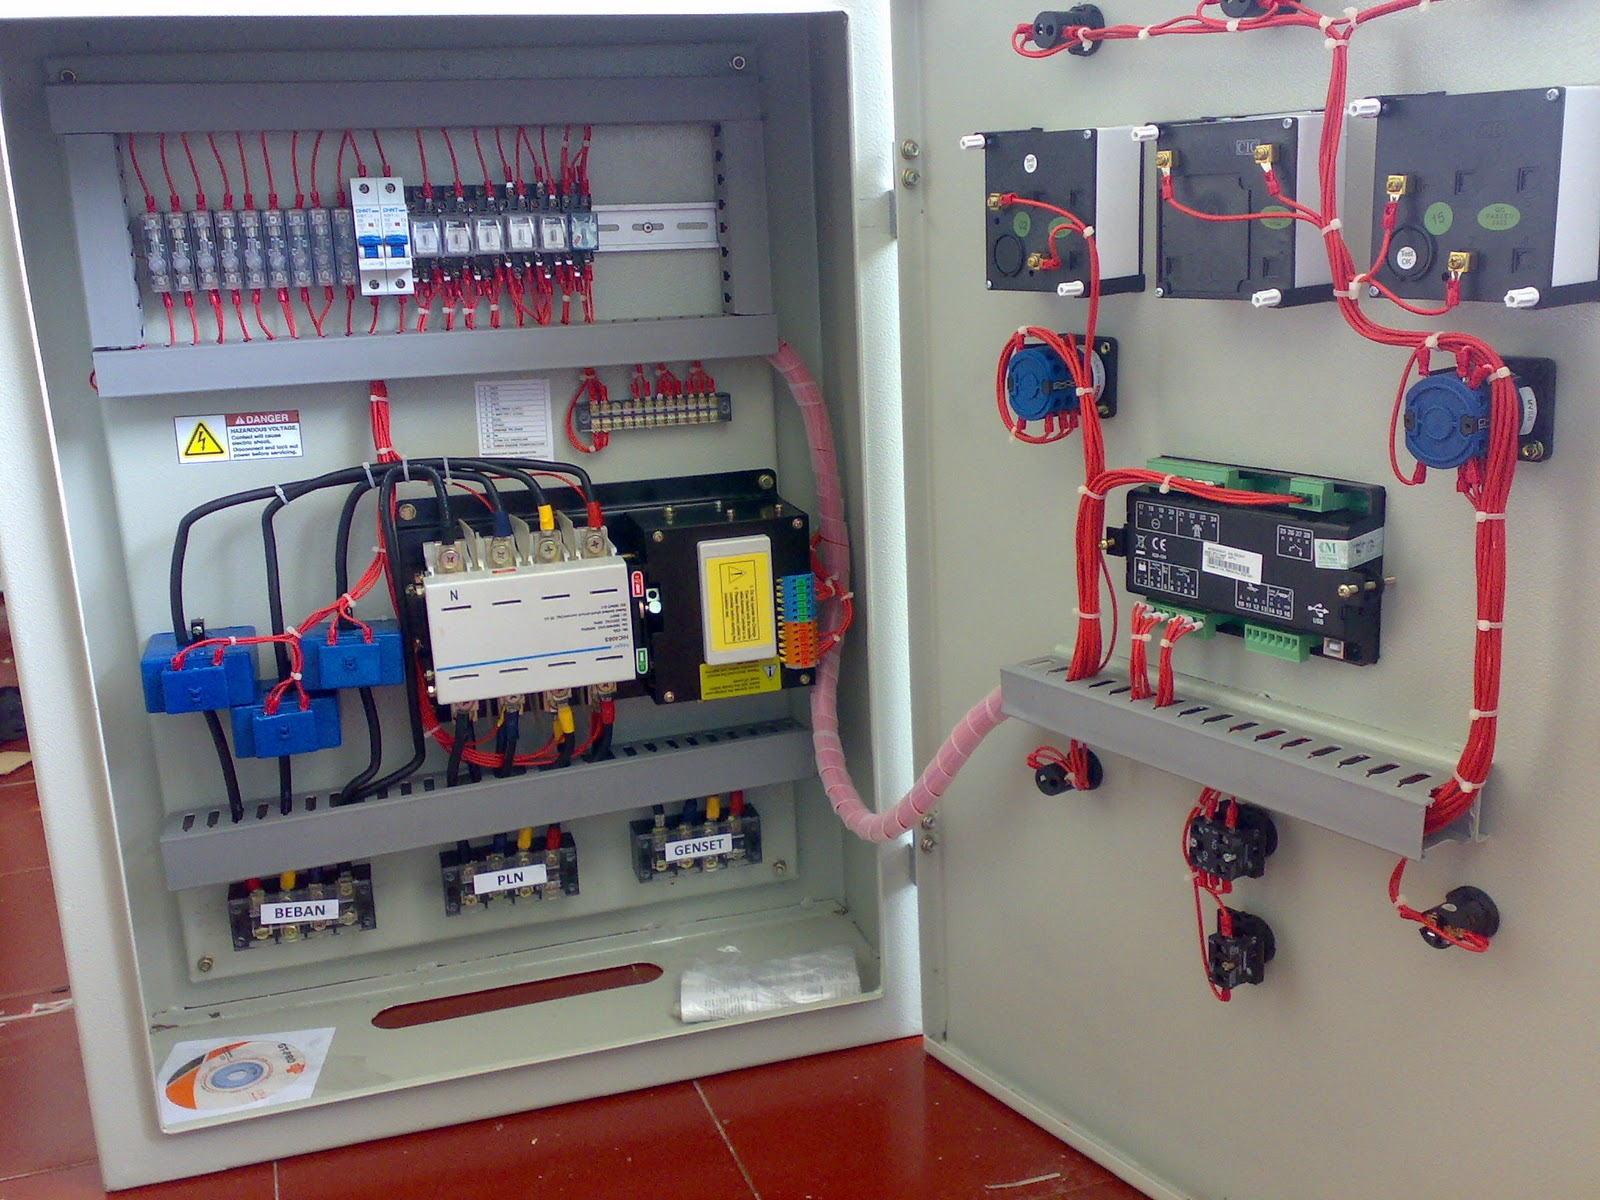 WRG-3714] Genset Synchronizing Panel Wiring Diagram on